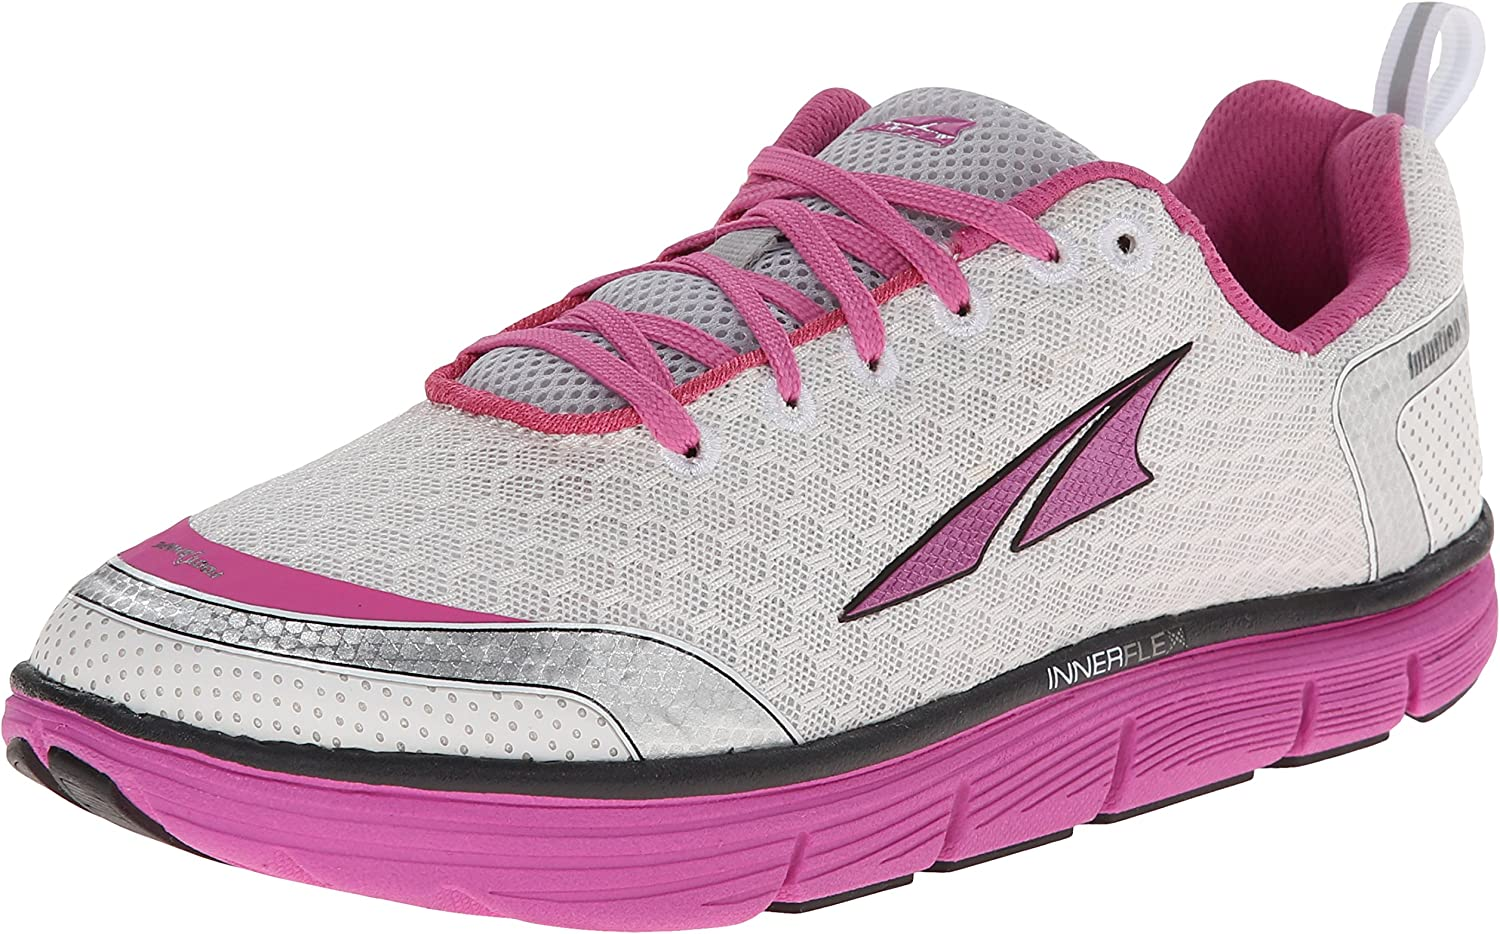 Altra Running Womens Intuition 3 Fitness Running shoes, Silver Pink, 75 M US